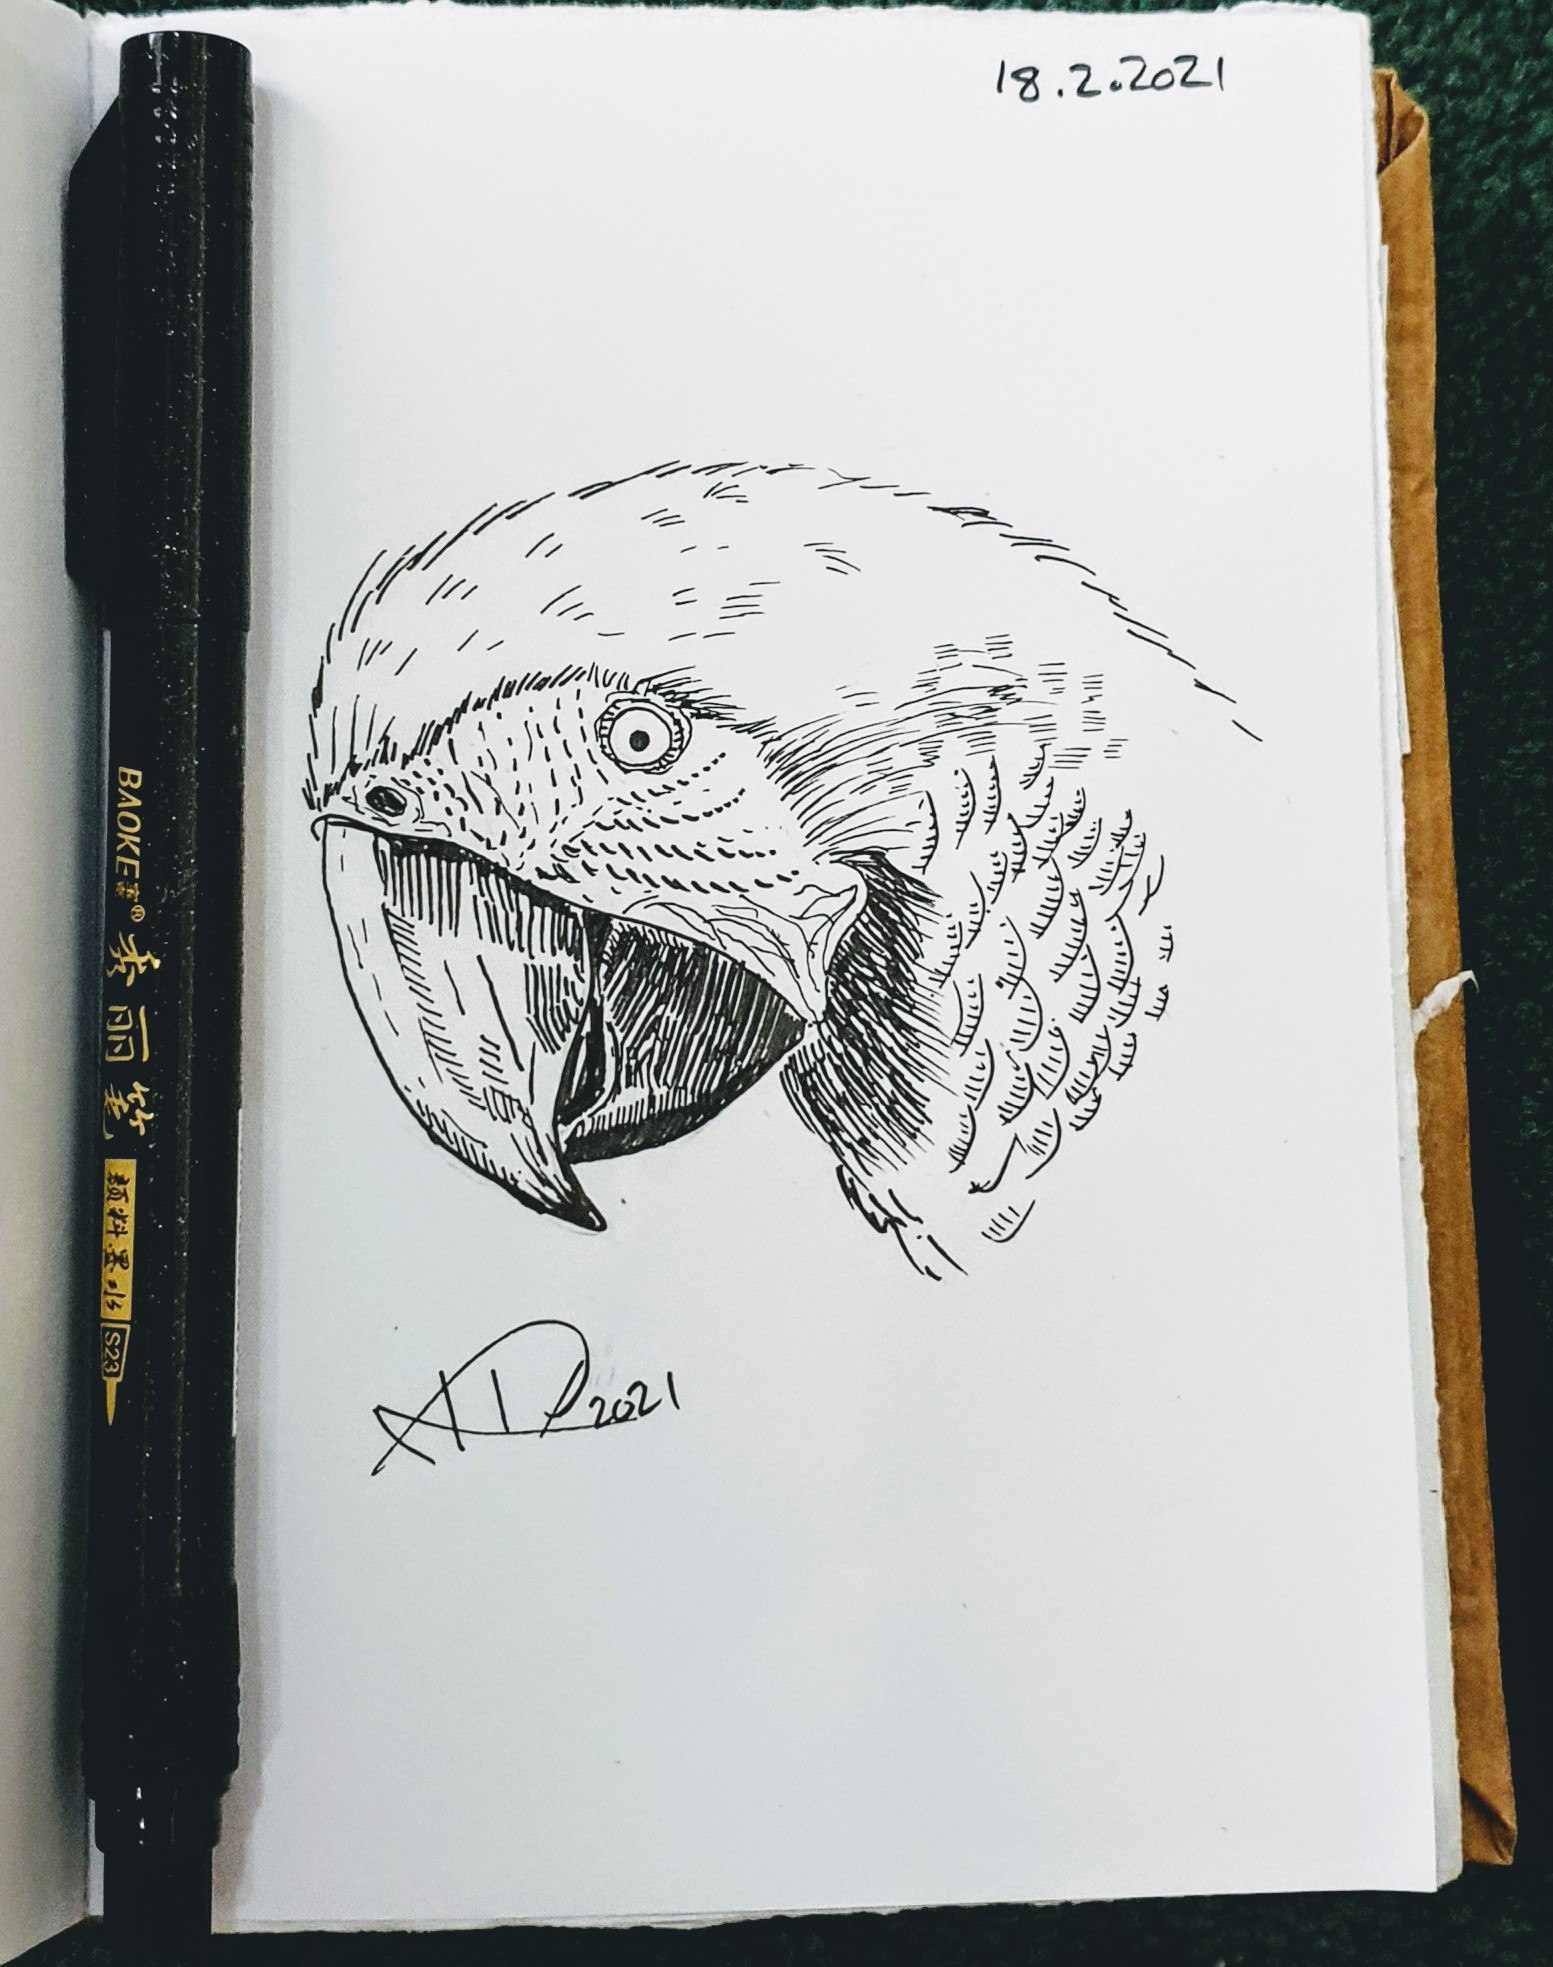 Ali radwani drawing sketch challenge 1hour1sketch pen pencil parrot